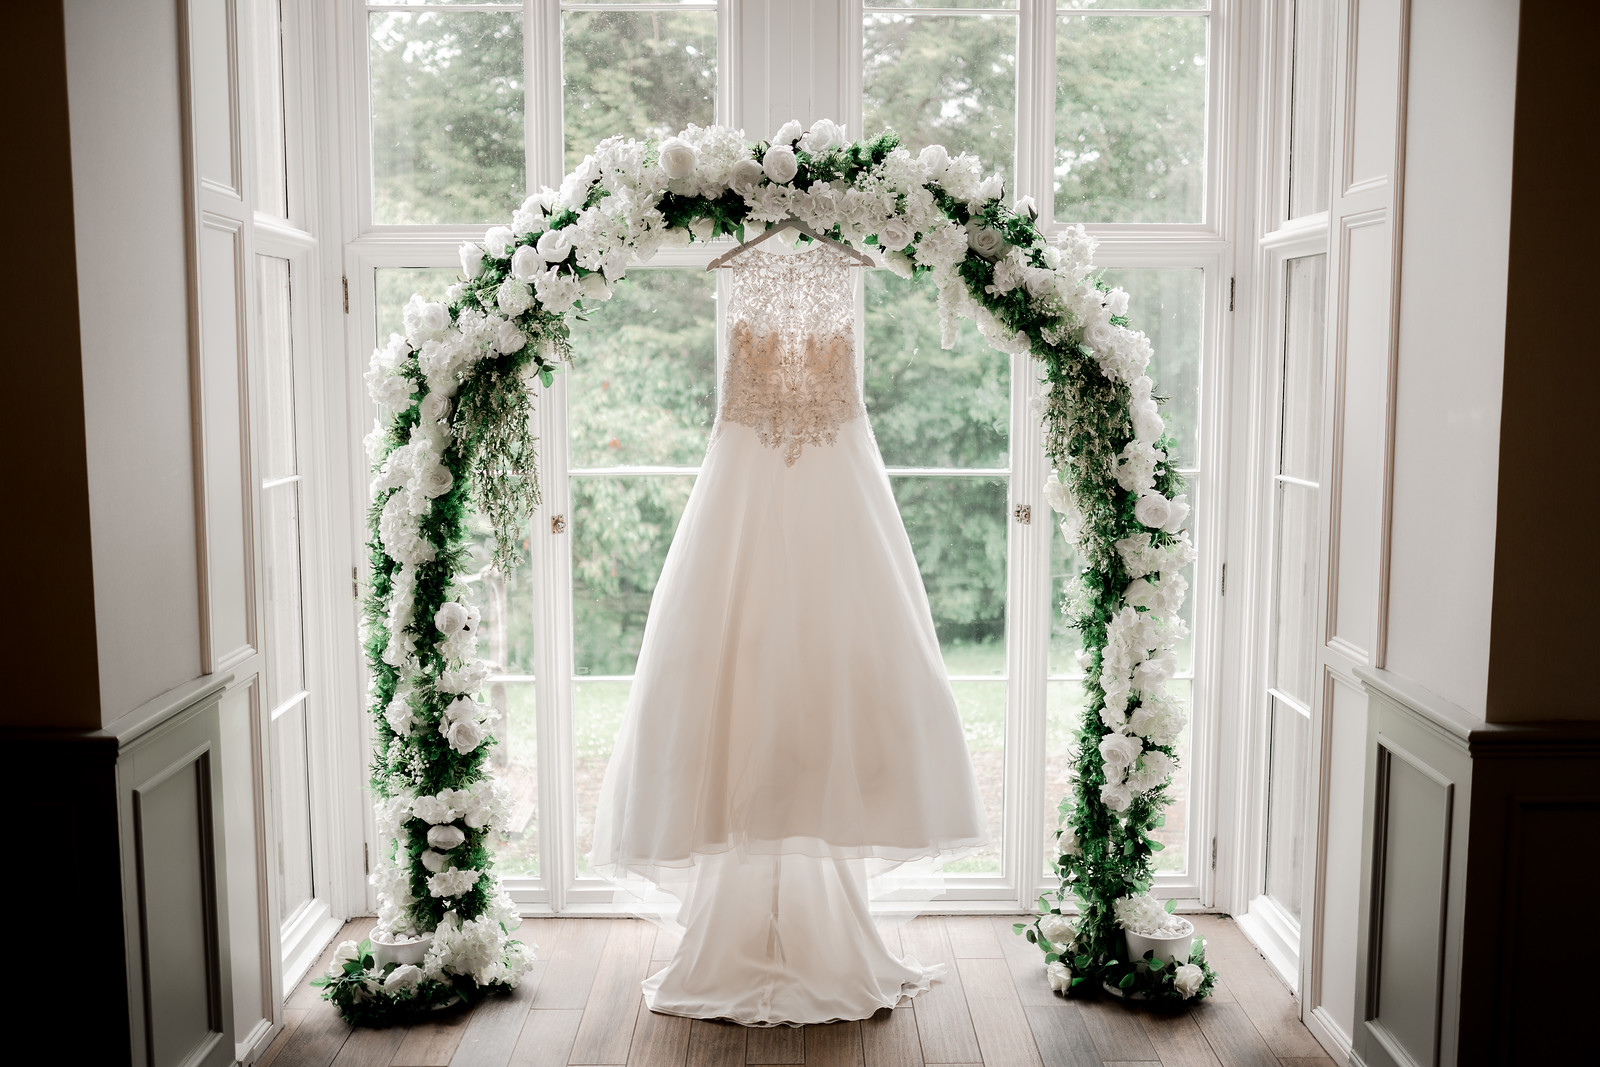 Brides wedding dress hung in the middle of an archway of flowers